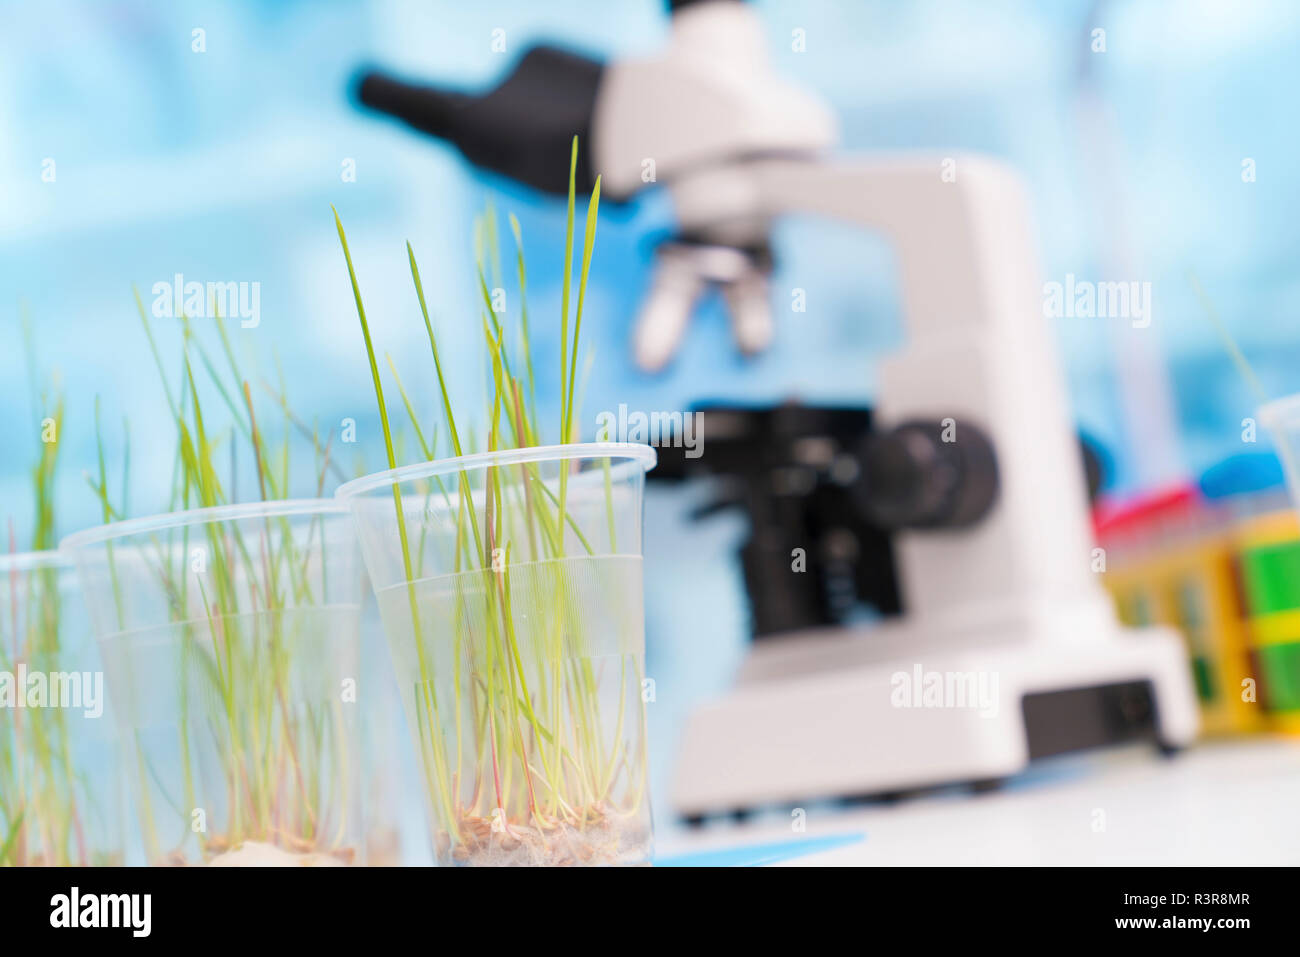 Agriculture research, conceptual image. Stock Photo